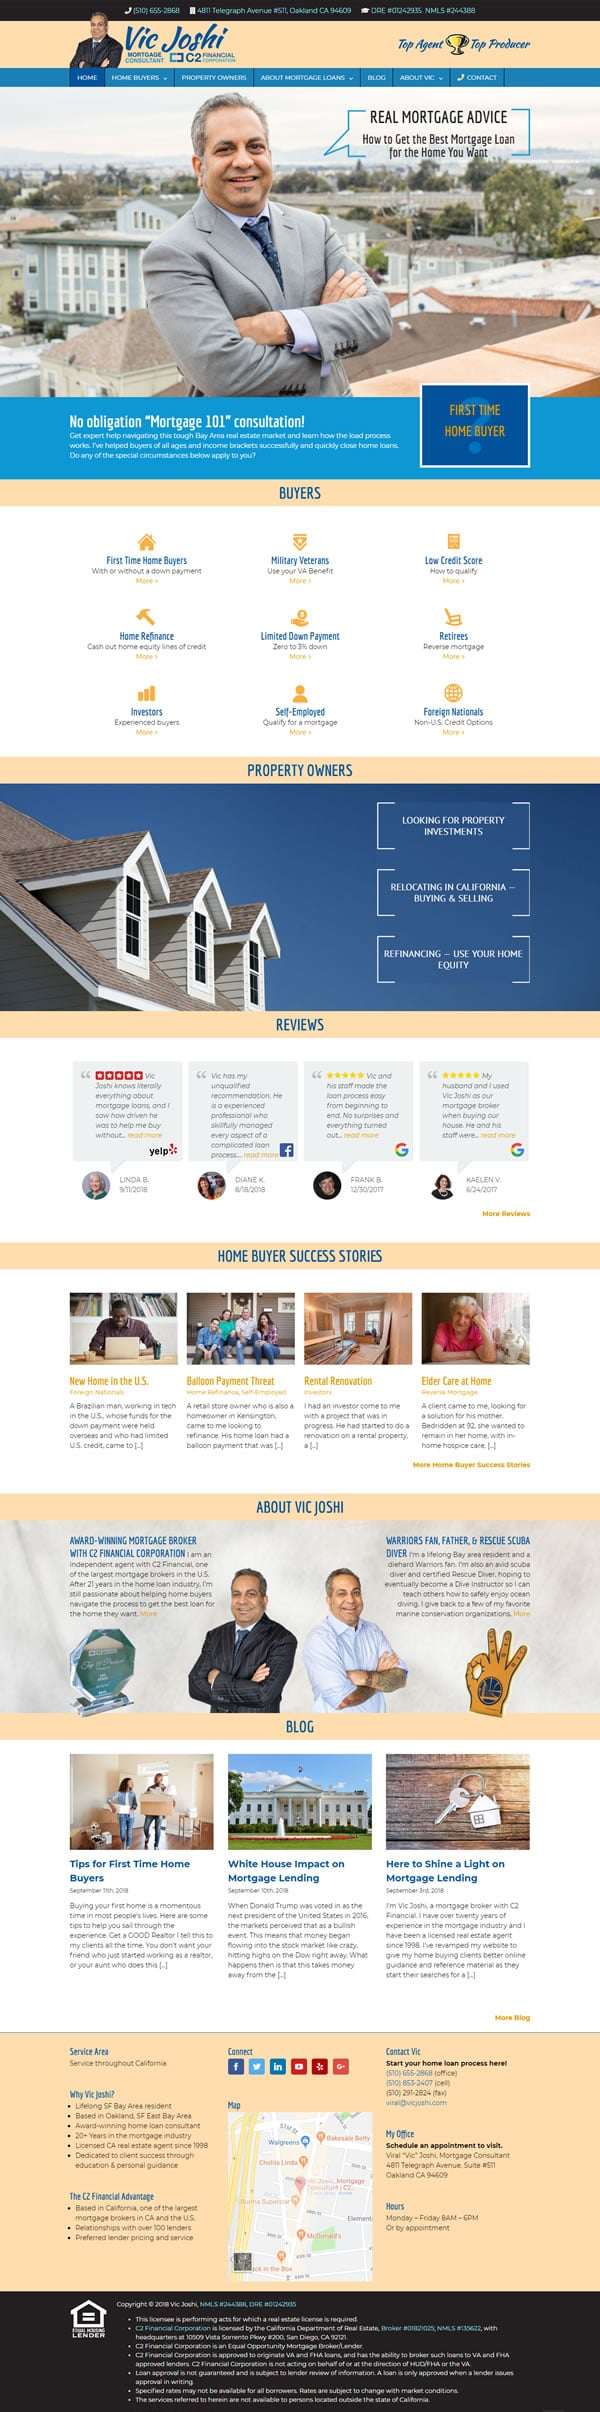 mortgage consultant wesite after redesign